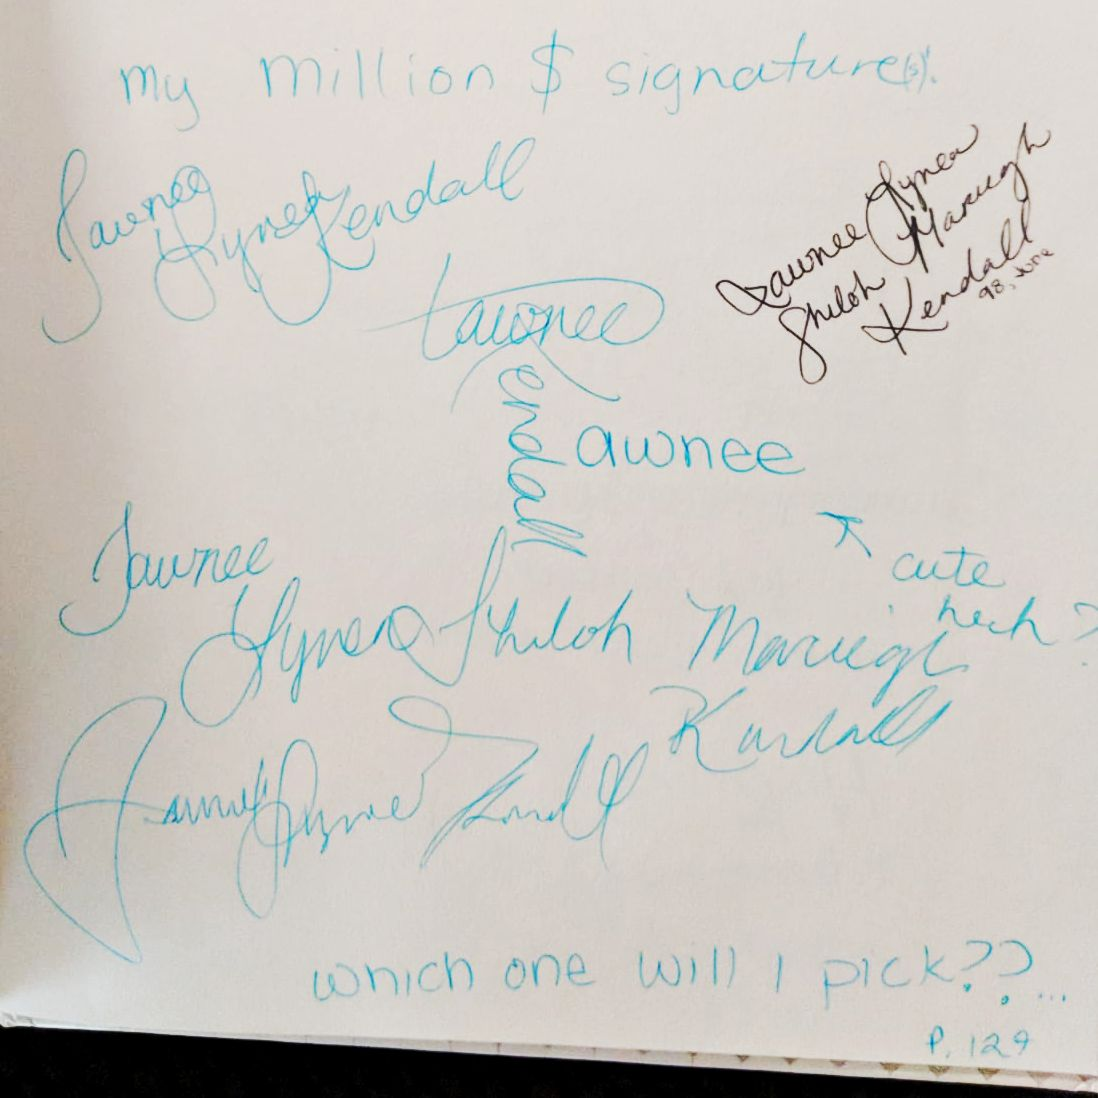 """A collection of practiced """"Million $ signatures"""" from my 14 year old self. (P.S. Shiloh Mareigh is not part of my name. I apparently needed the extra ones to be cool.)"""